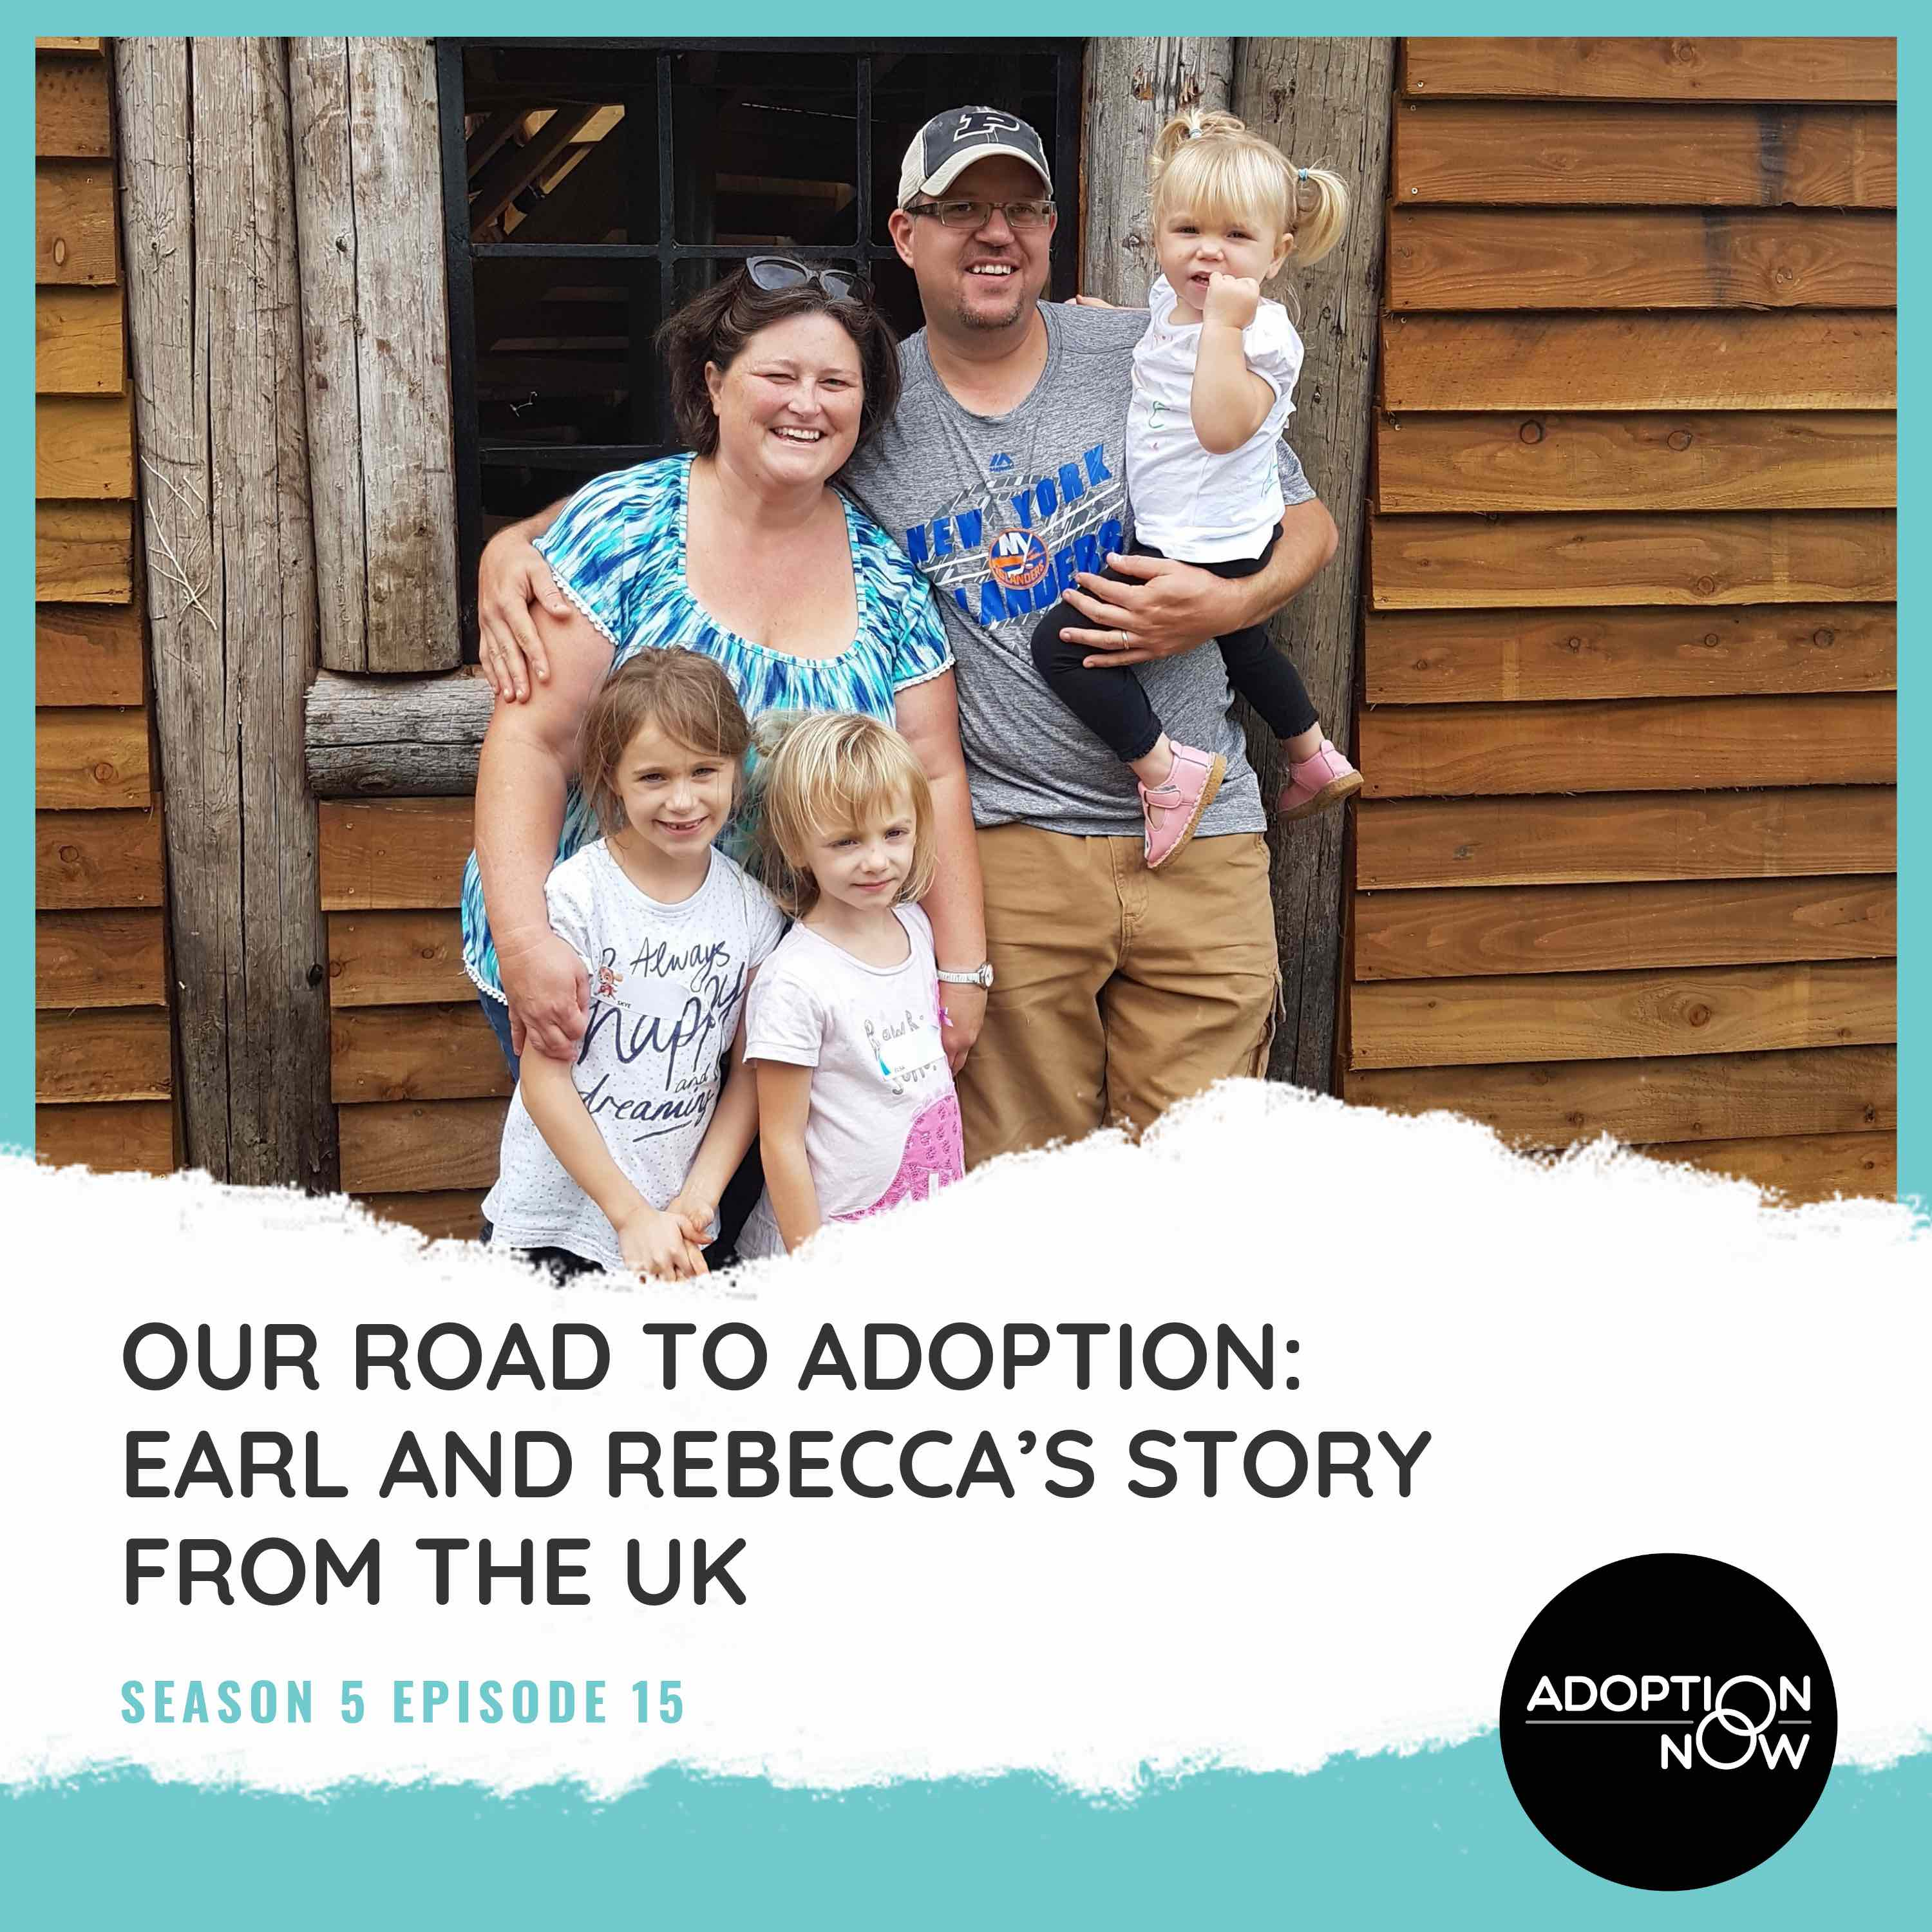 Our Road to Adoption: Earl and Rebecca's Story from the UK [S5E15] show art